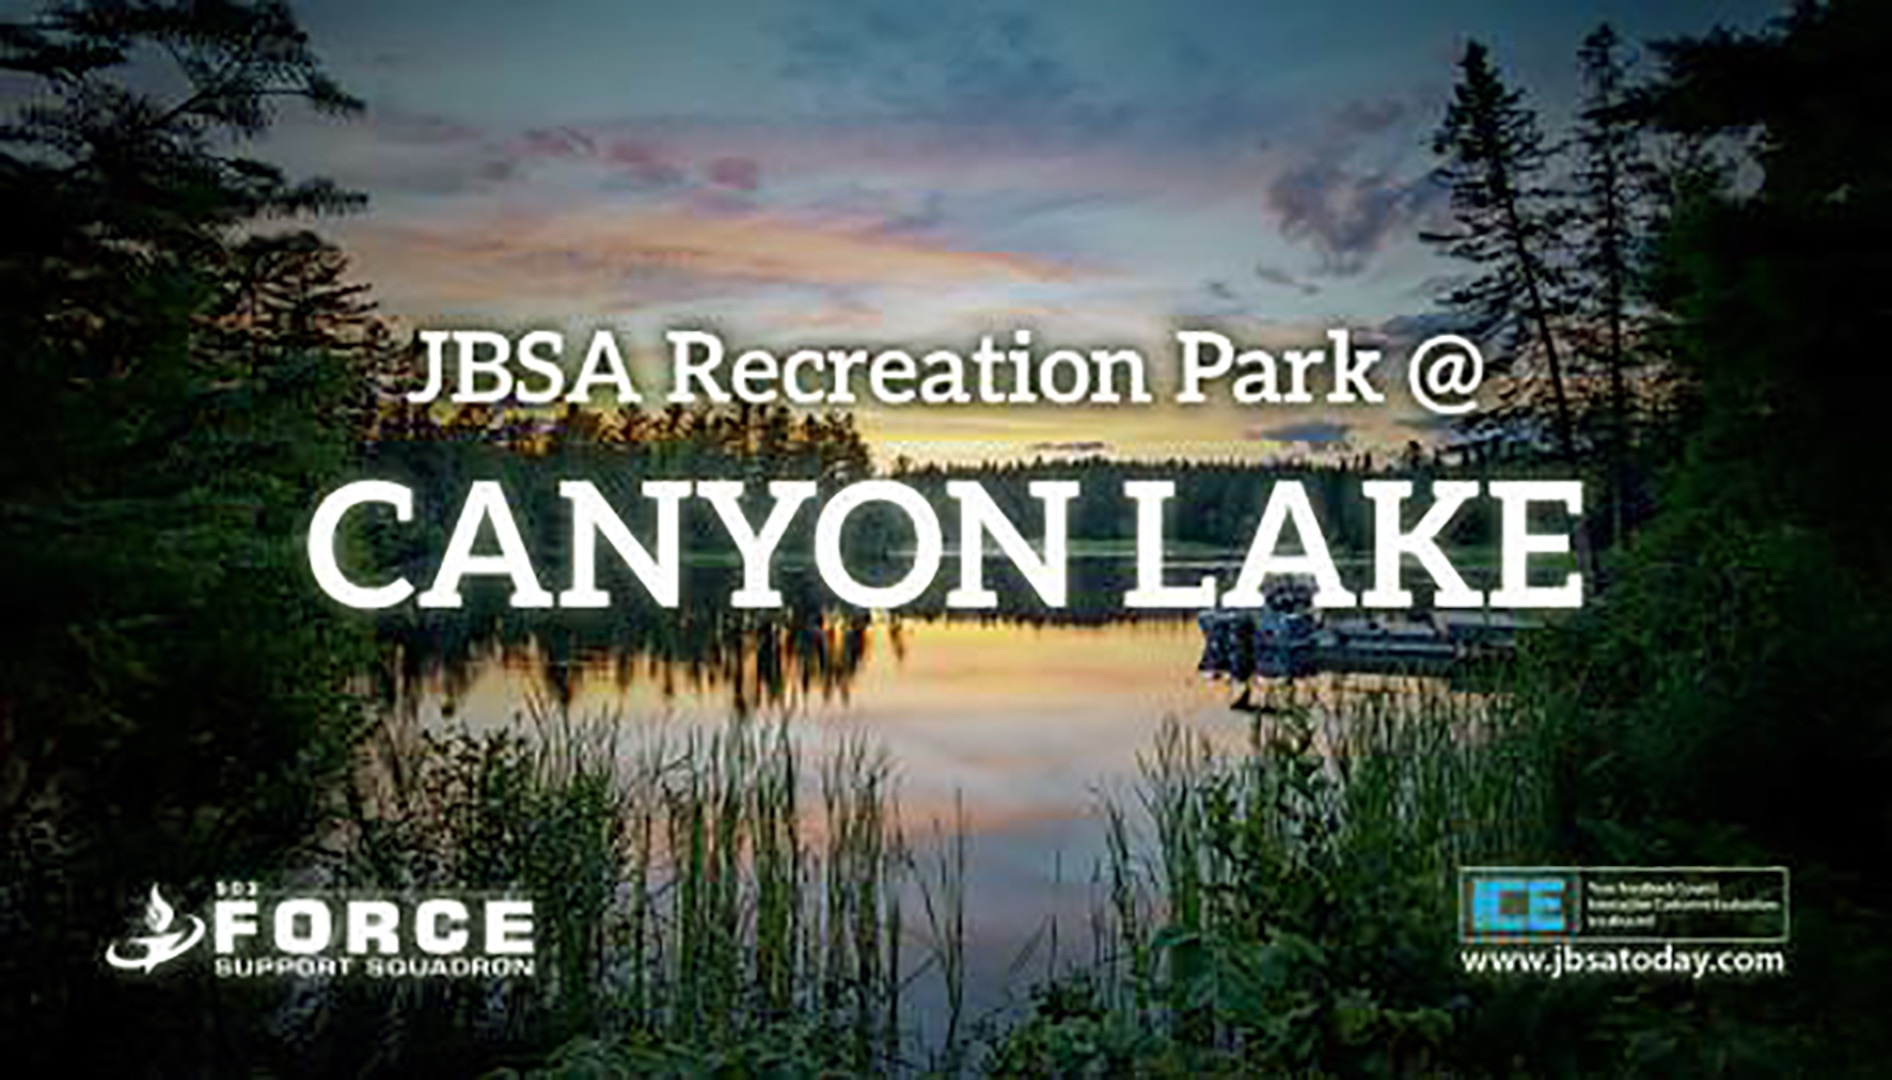 At the JBSA Recreation Park at Canyon Lake, groups of 10 are being allowed in, which includes the sponsor who must show their DOD ID card.